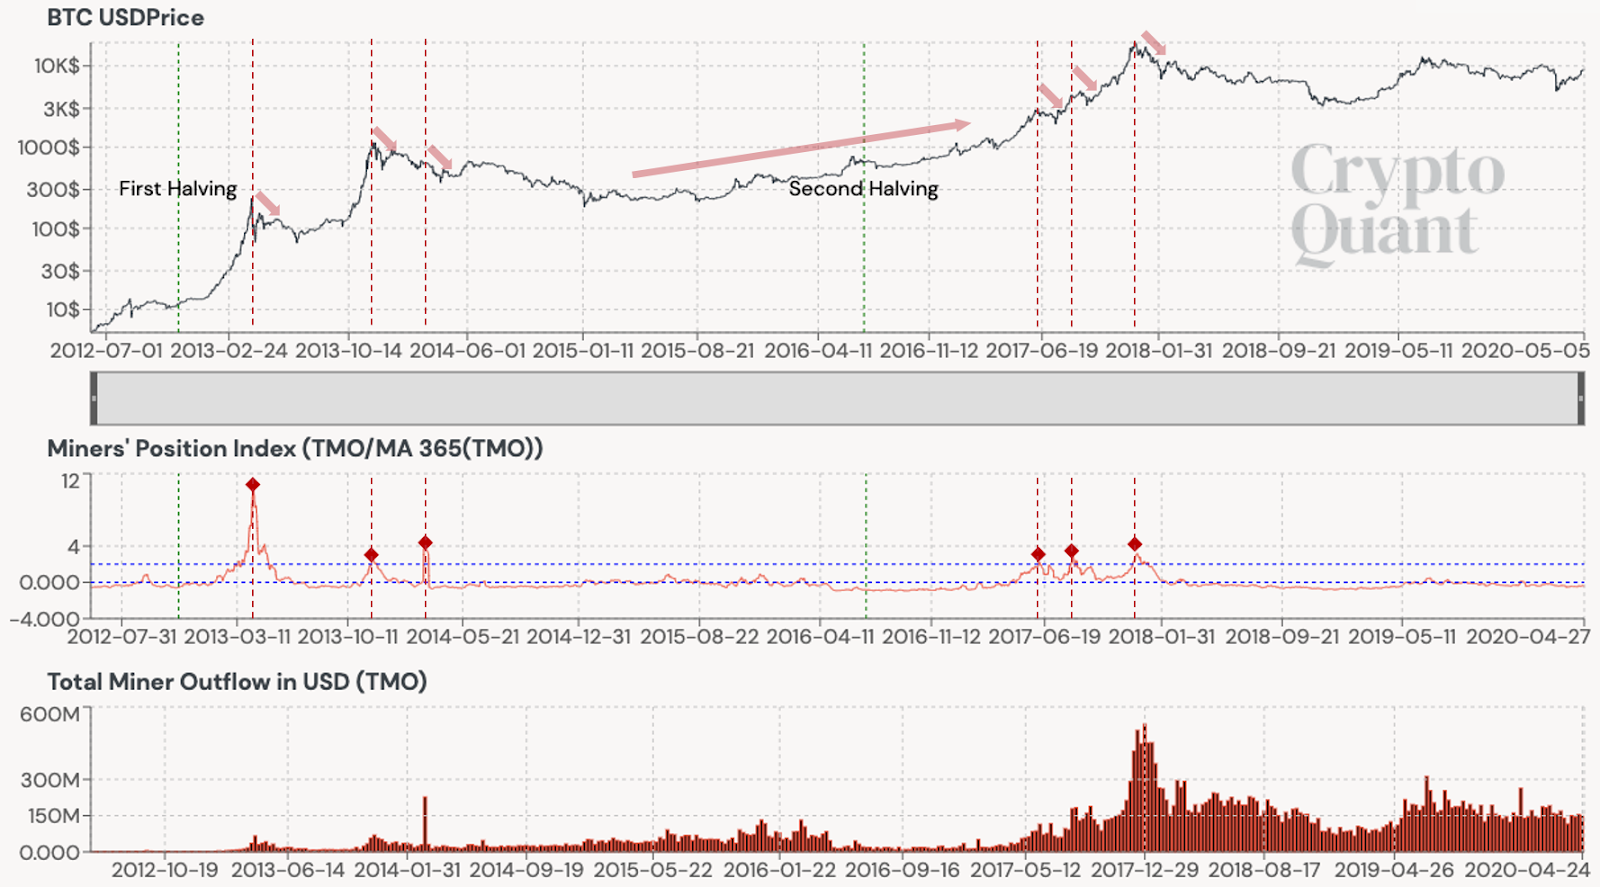 MPI shifts during previous Bitcoin halvings. Source: CryptoQuant